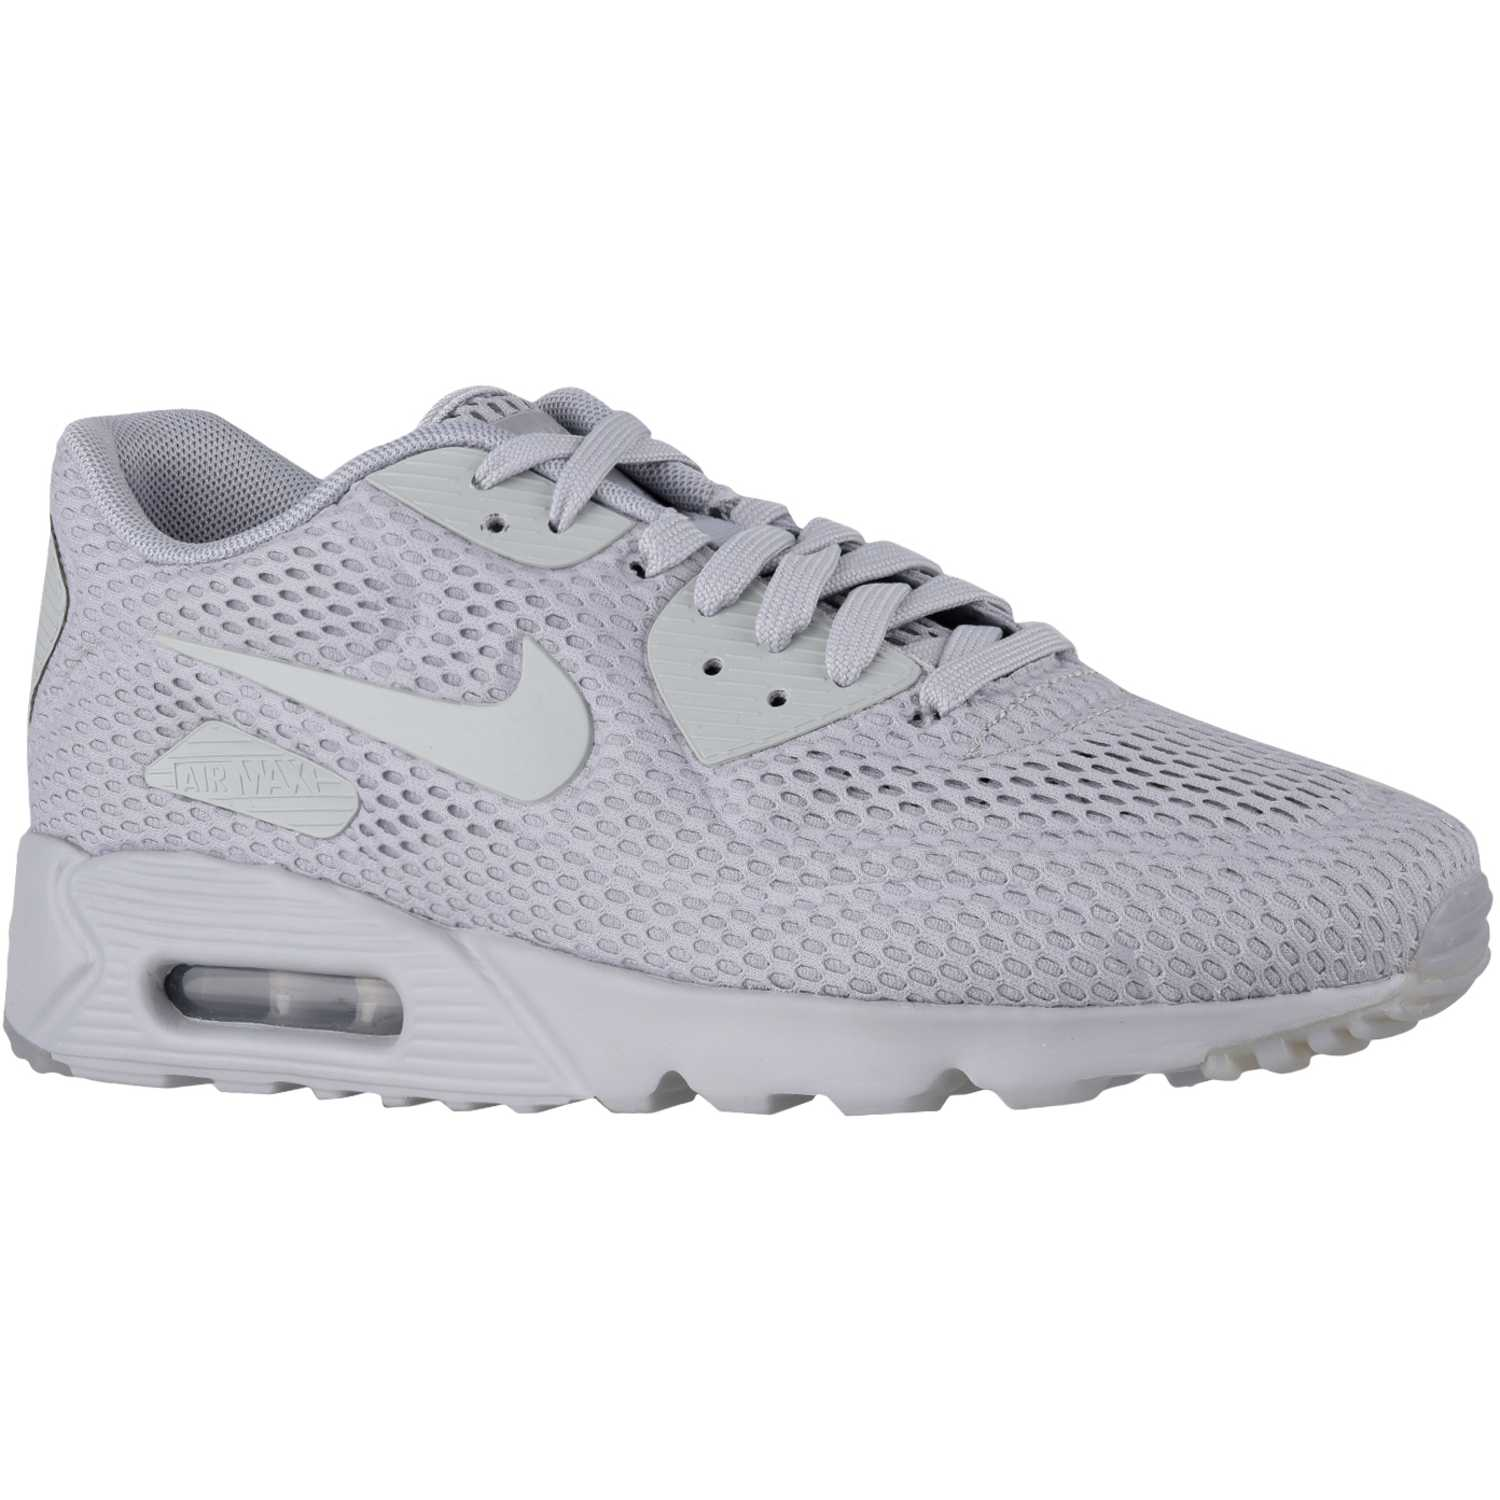 Detener Picotear La cabra Billy  Nike air max 90 ultra br Humo Walking | platanitos.com